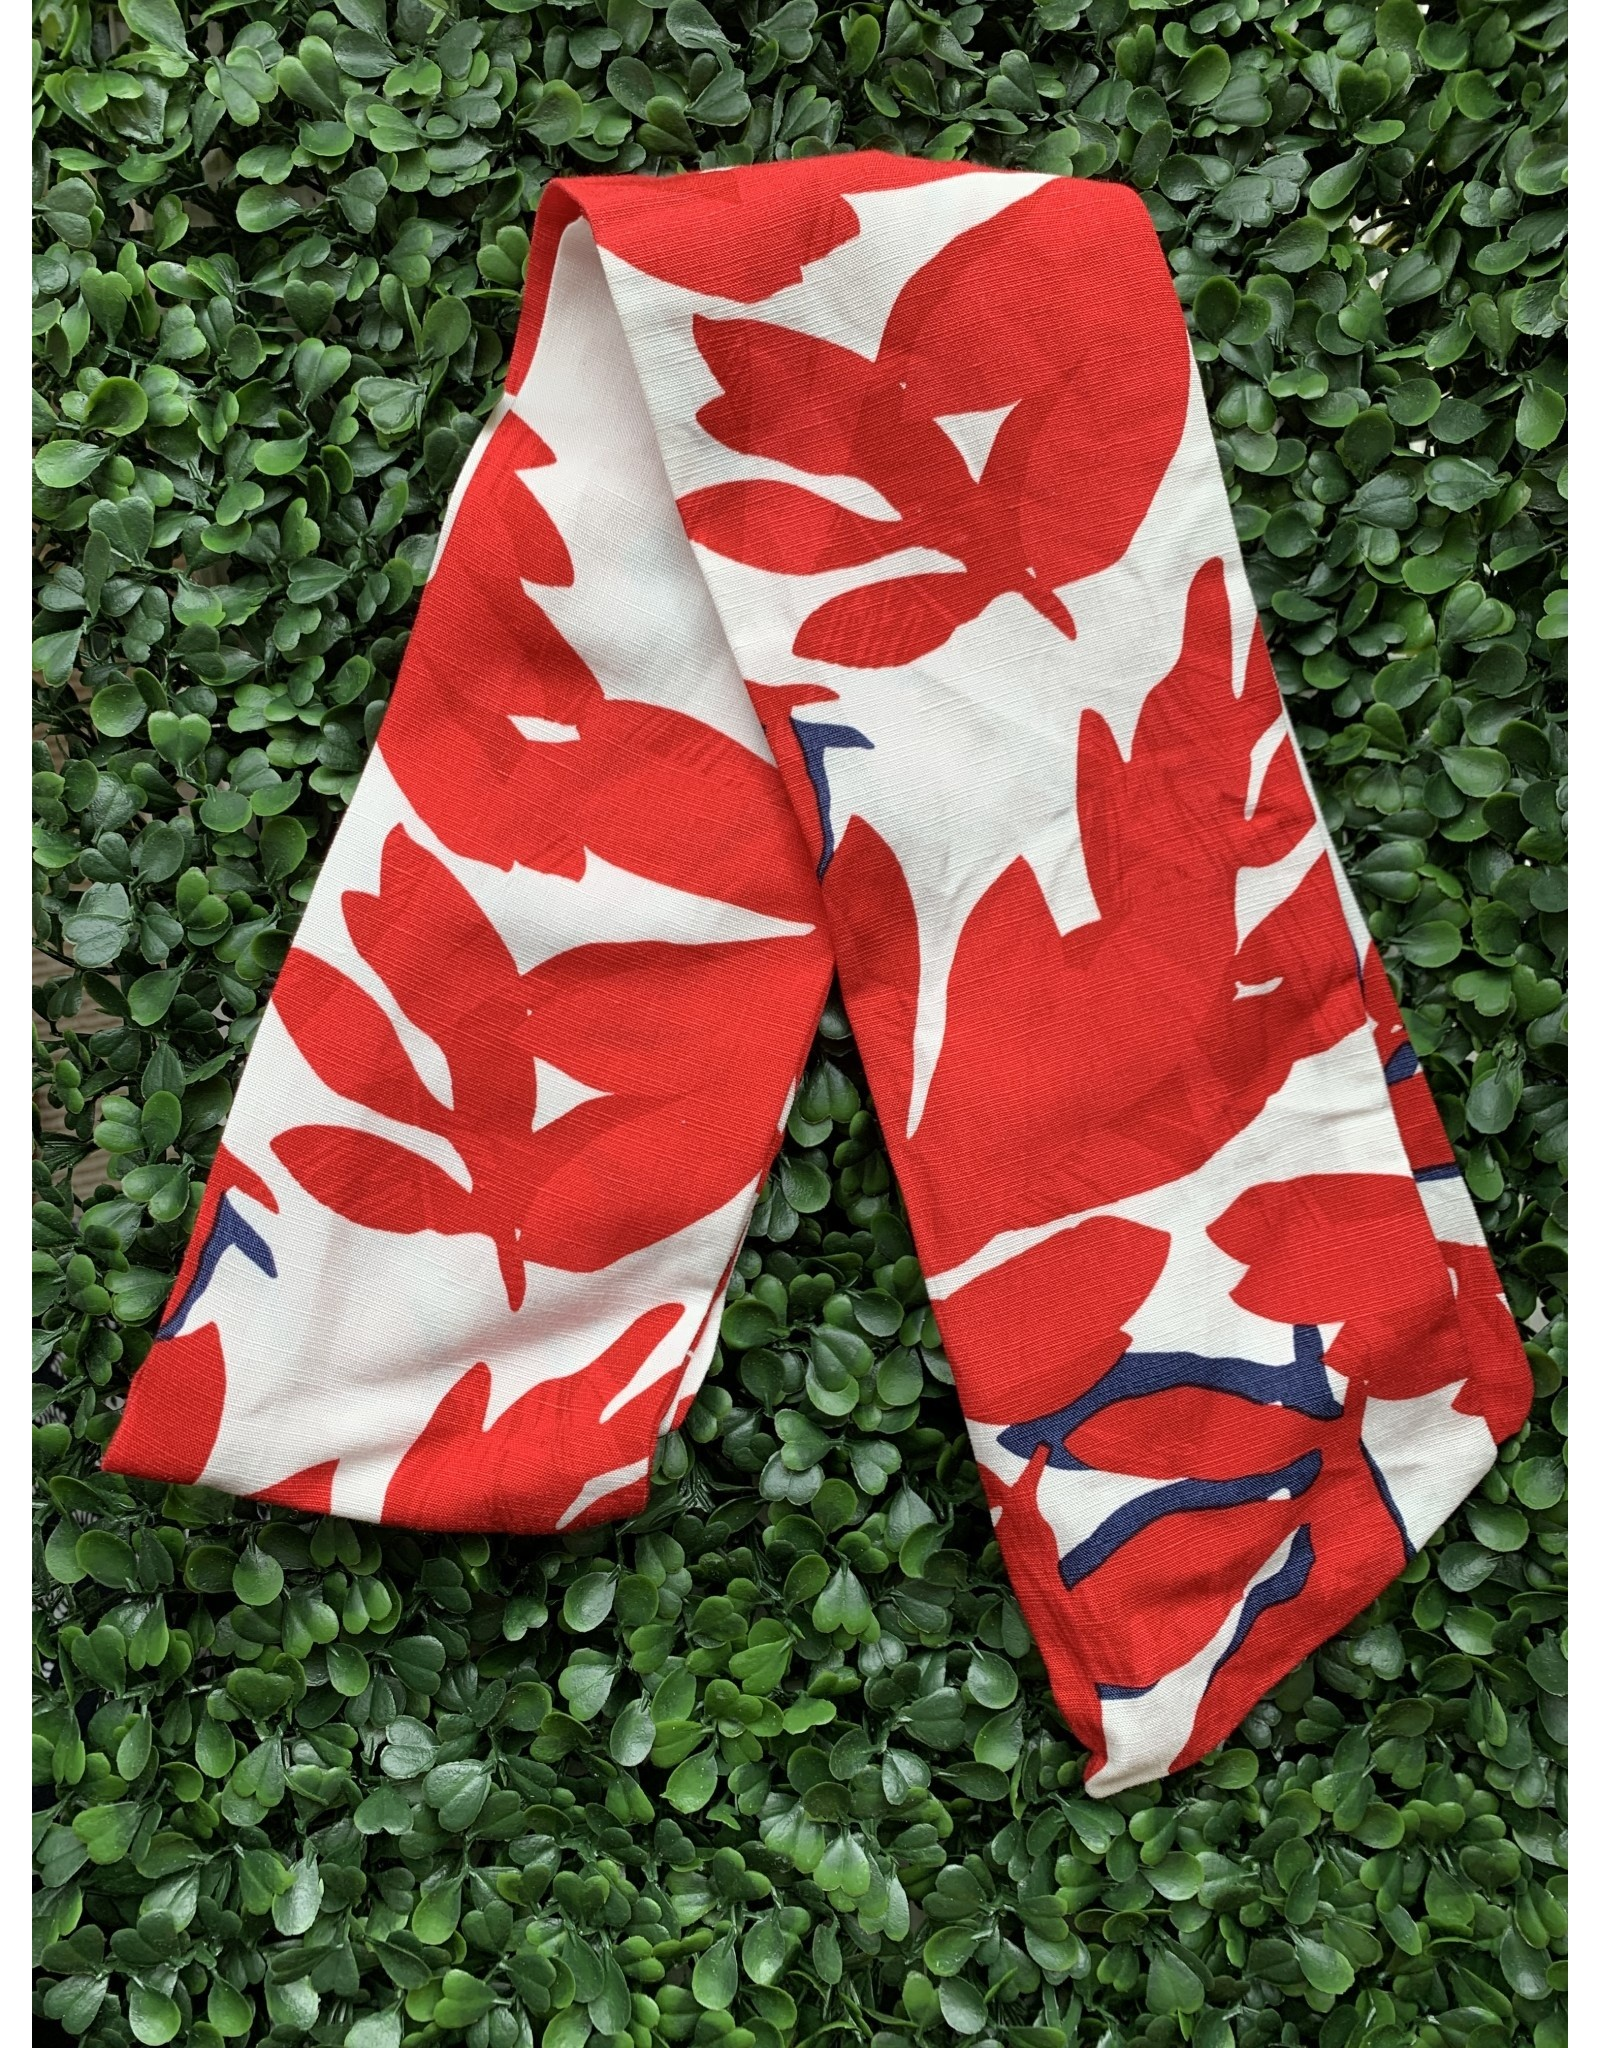 Cotton Wired Head Scarf in Red & Blue Foliage